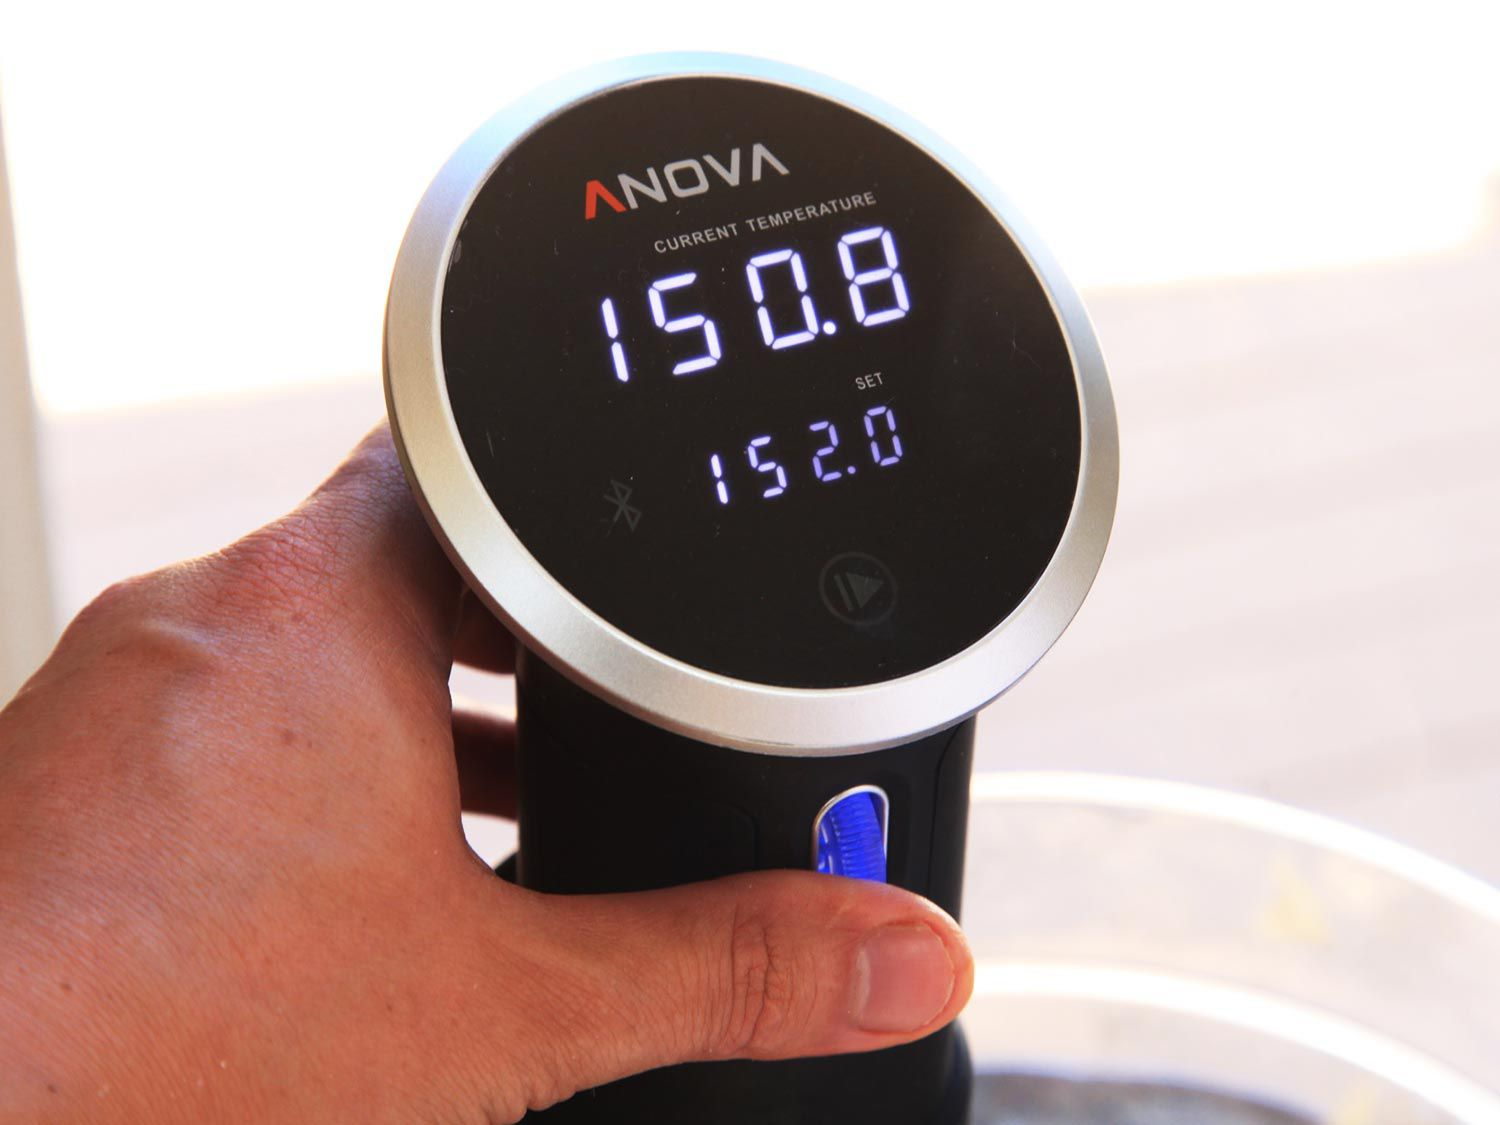 Setting the temperature for sous vide pork ribs on Anova immersion circulator